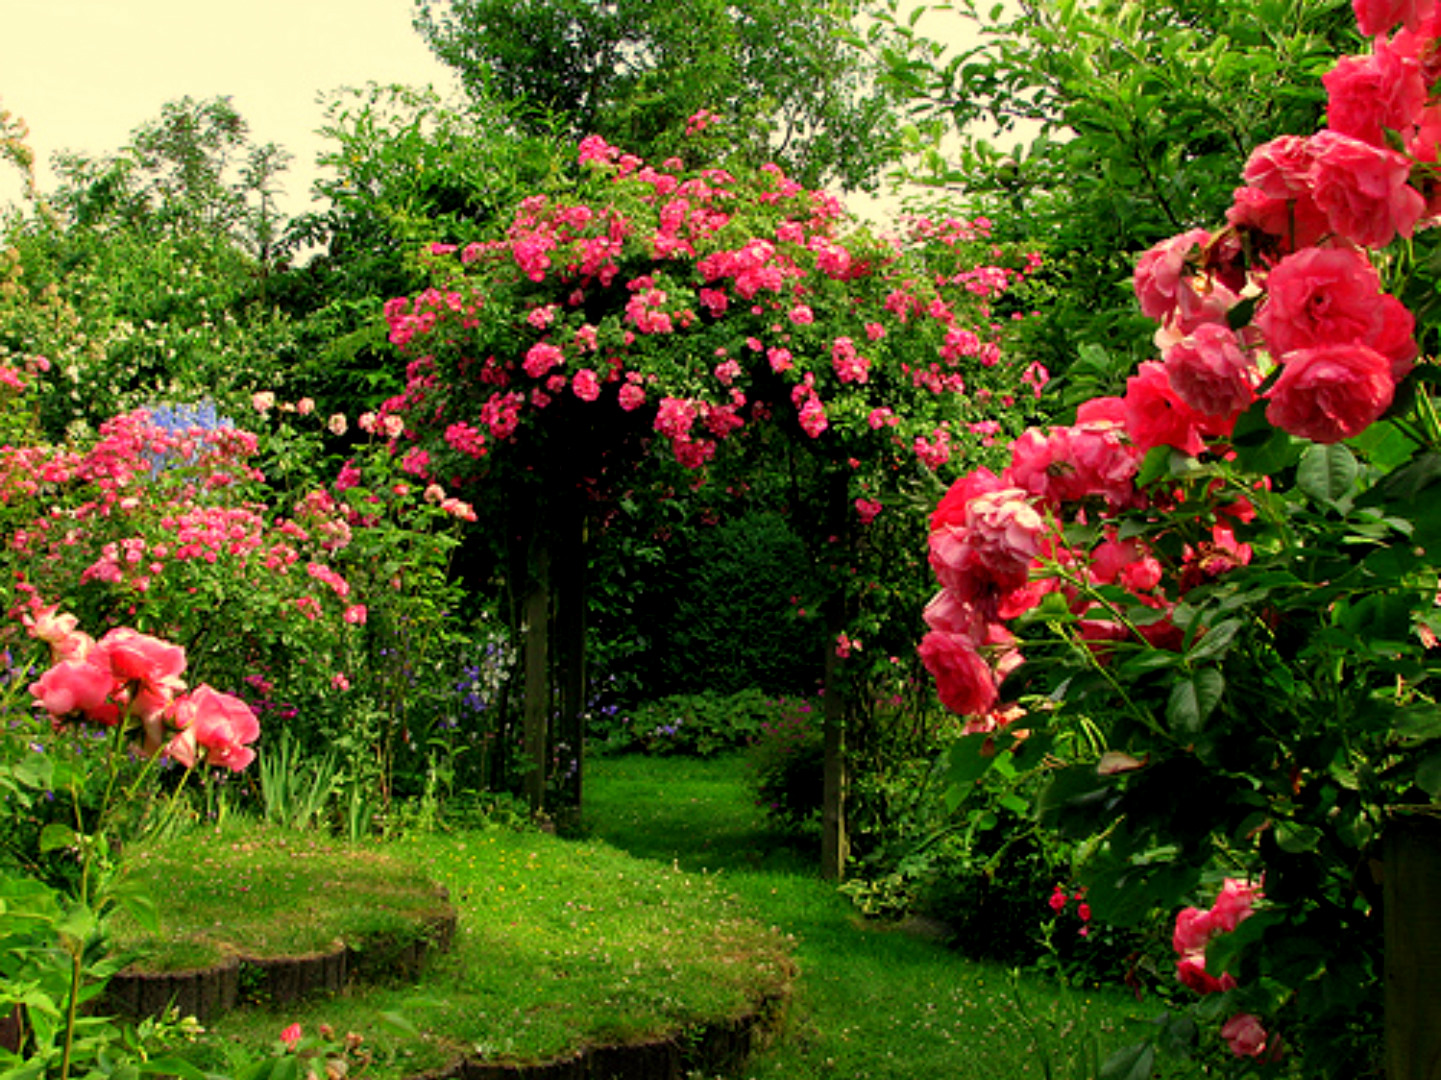 Rose Flower Garden   Flower HD Wallpapers Images PIctures Tattoos 1441x1080